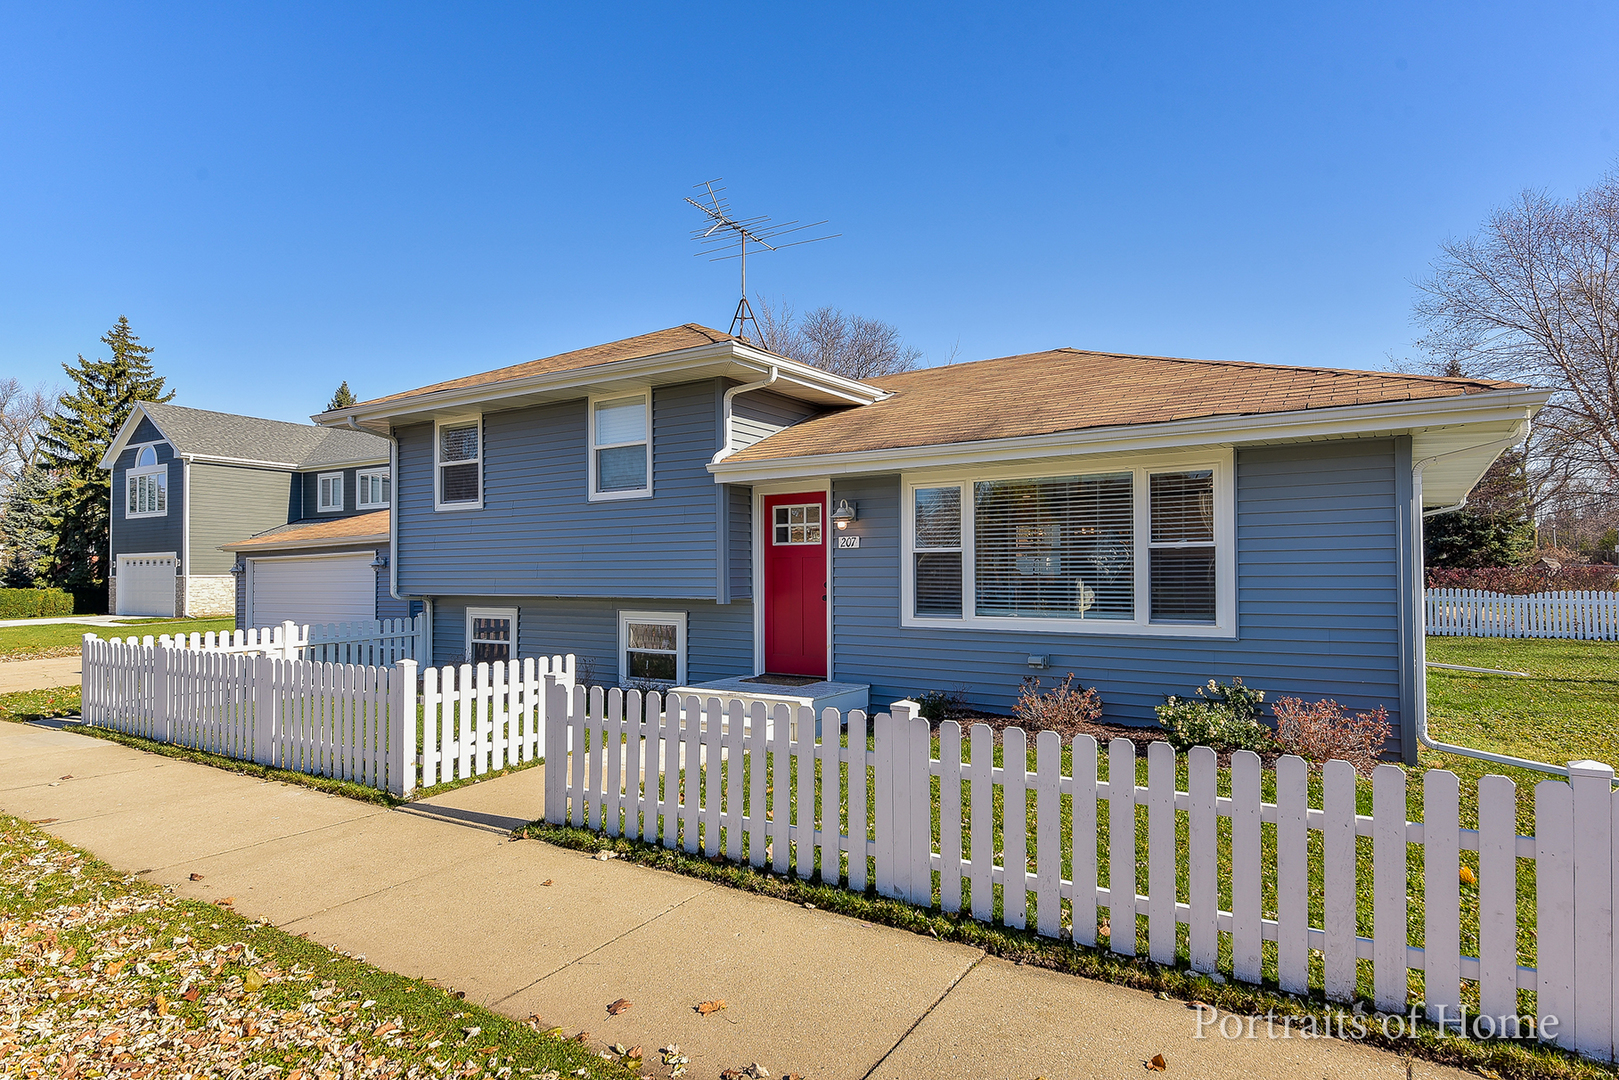 207 North West Avenue 60126 - One of Elmhurst Homes for Sale